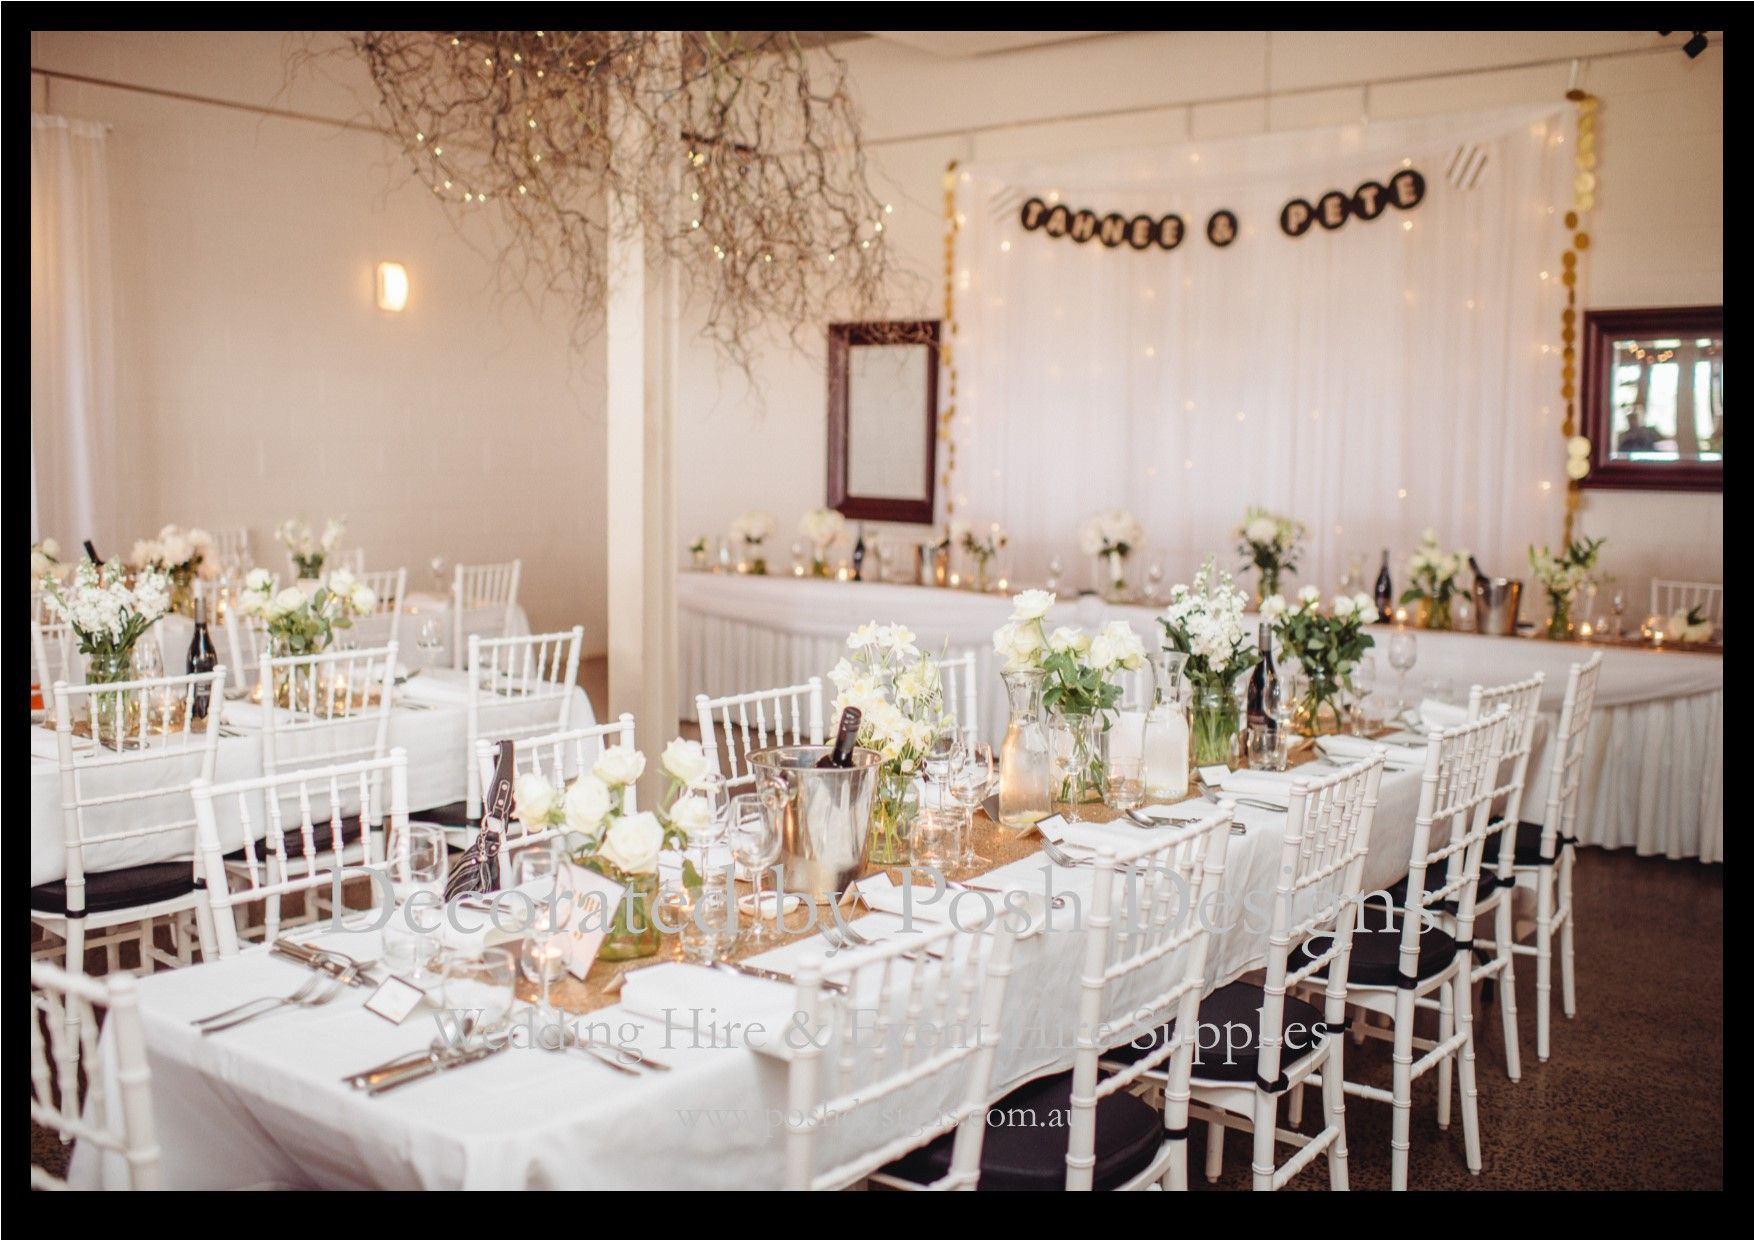 White tiffany chairs white table cloths gold table runners